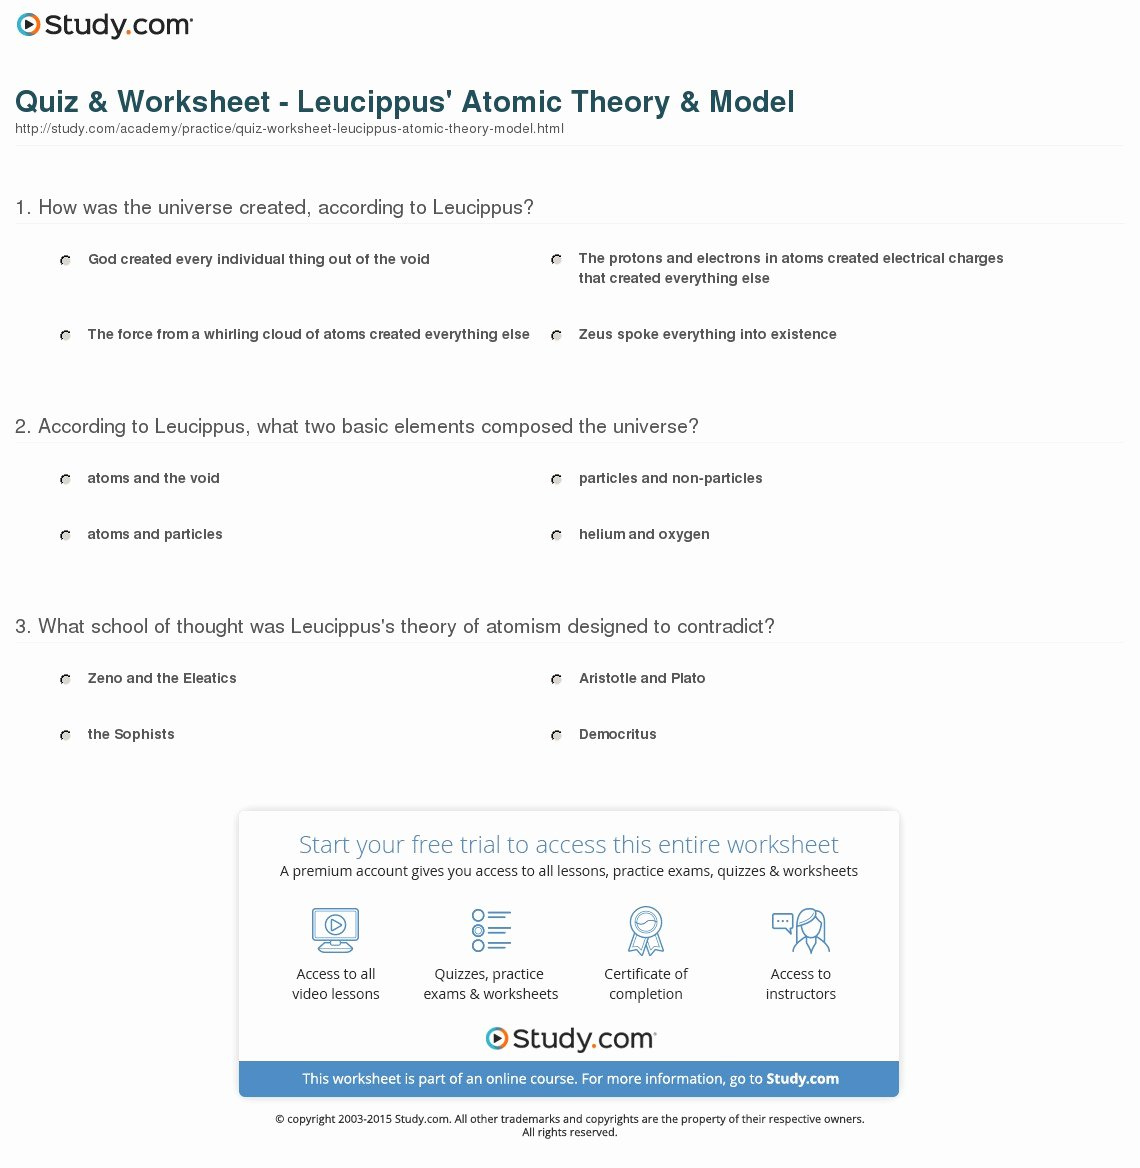 Atomic theory Worksheet Answers Luxury Quiz & Worksheet Leucippus atomic theory & Model